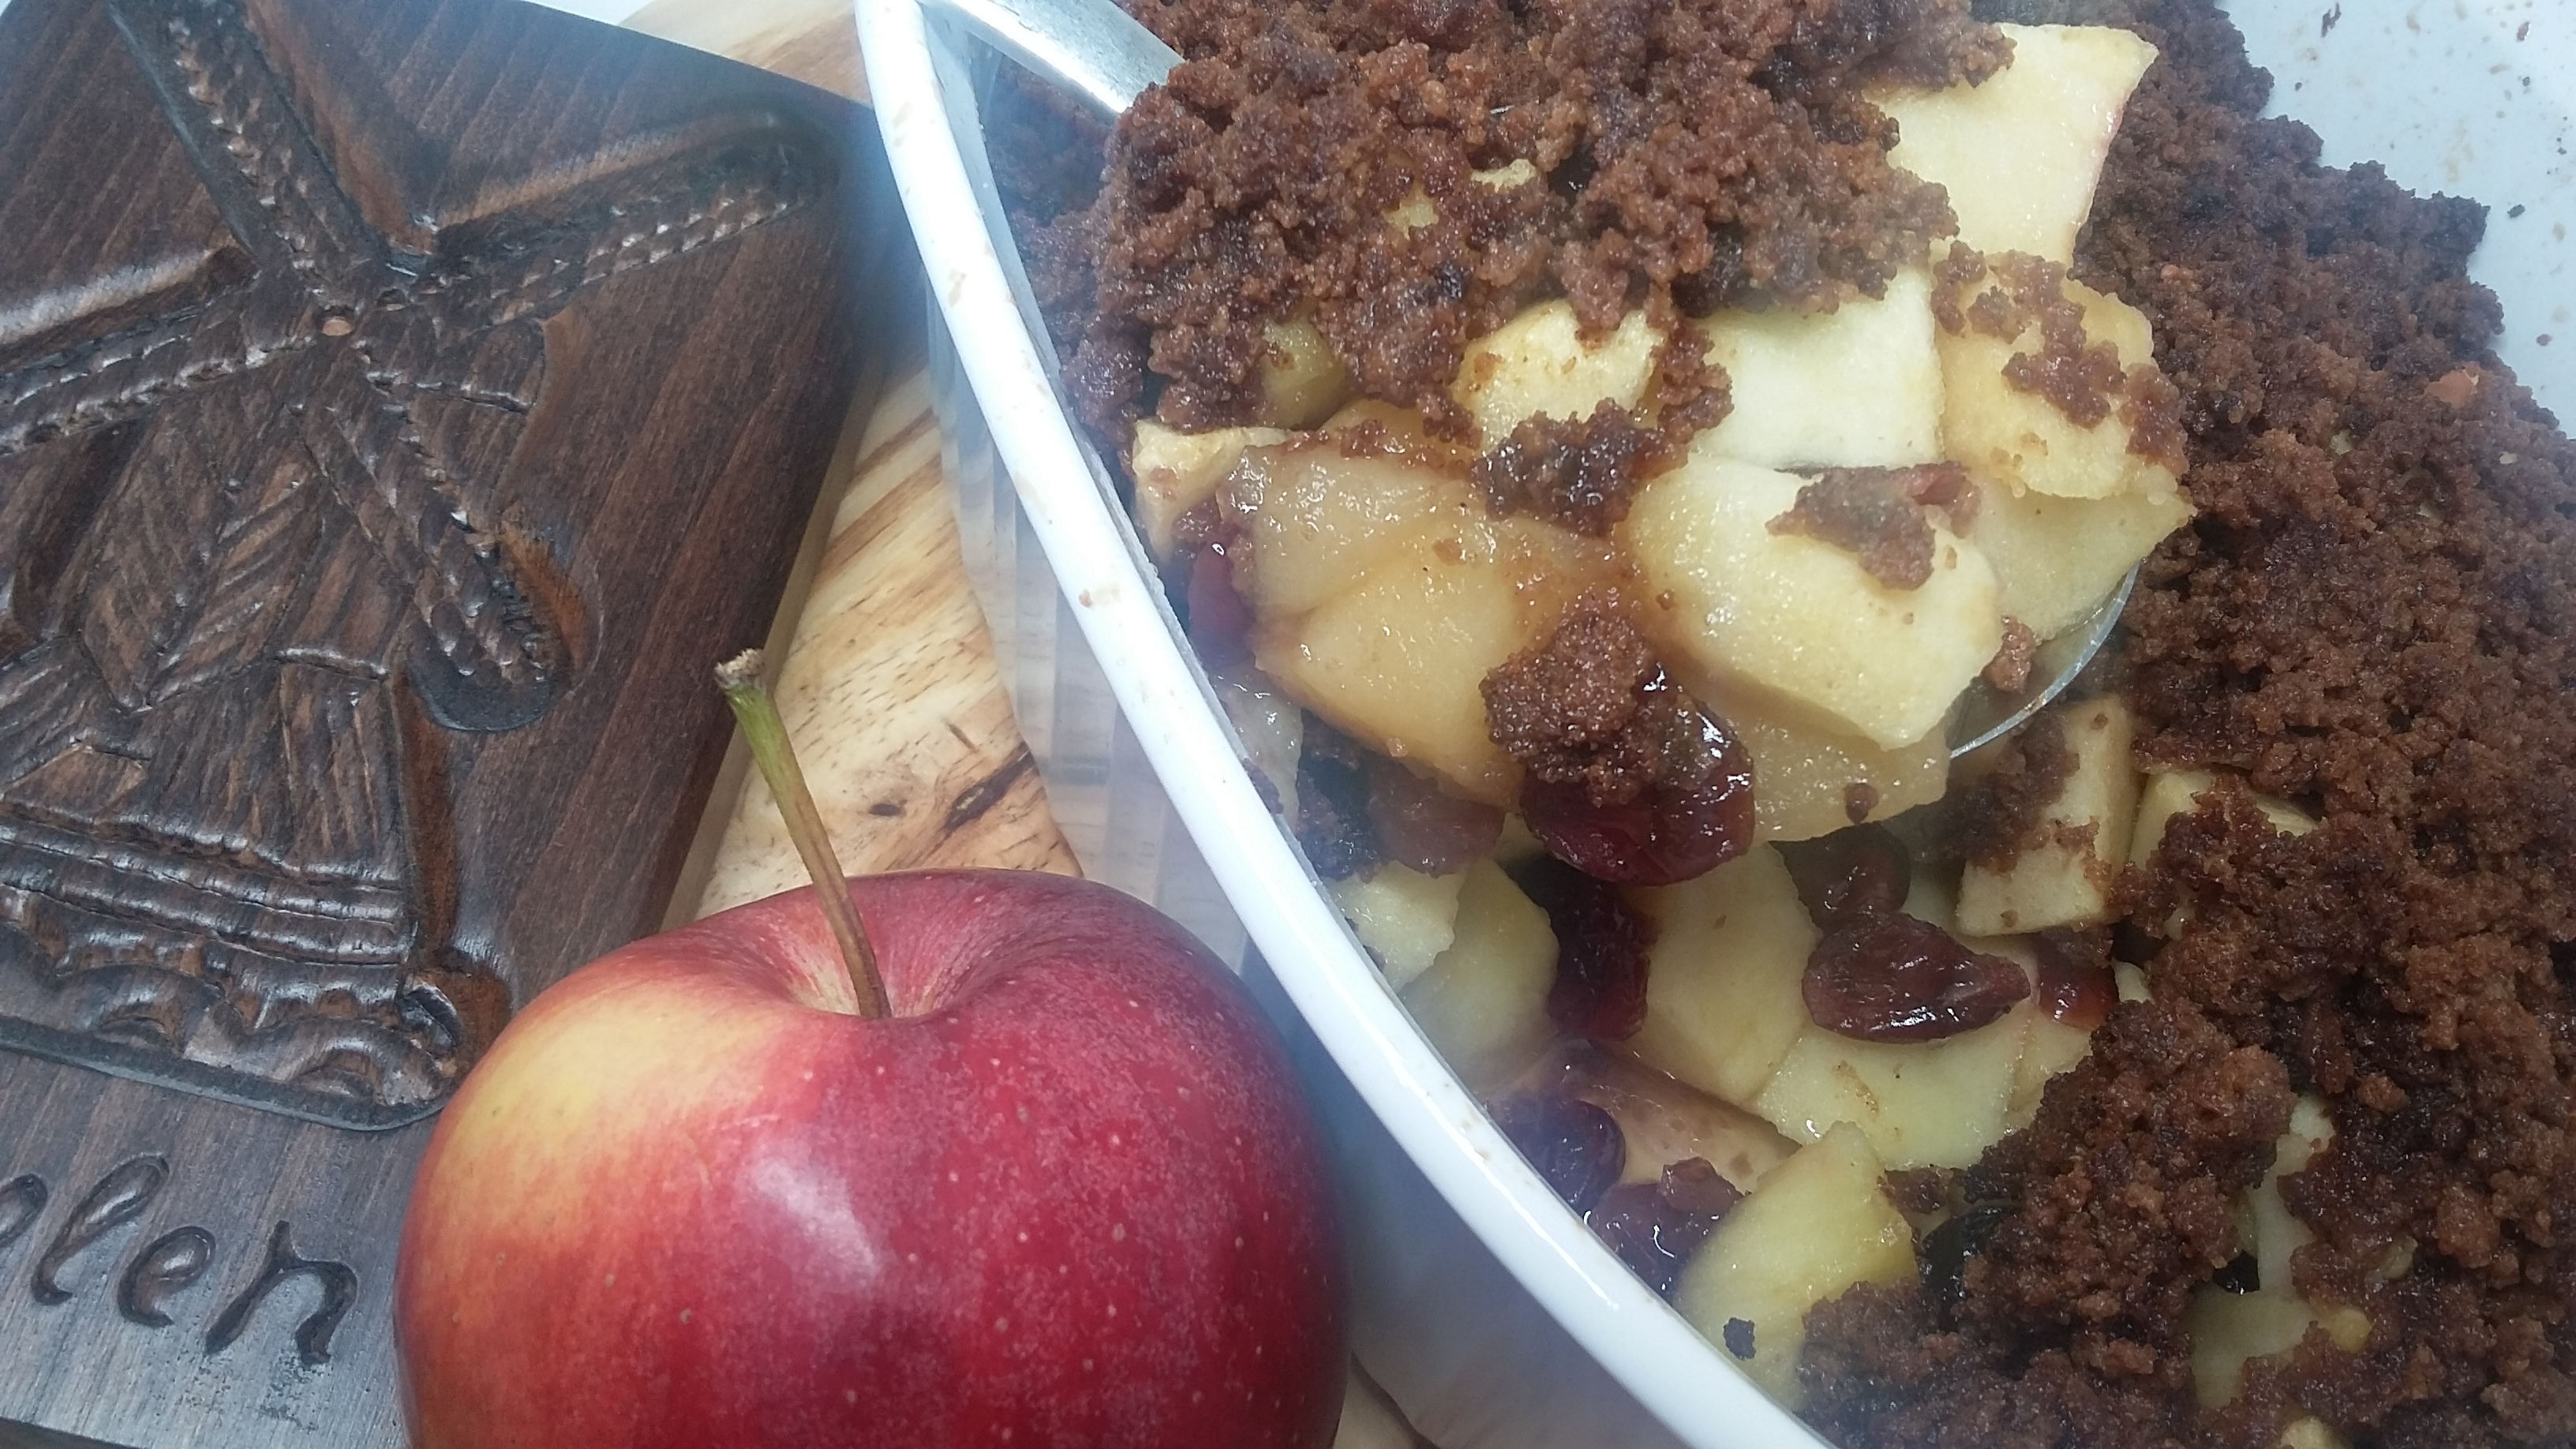 Apples and cranberries and cookies, oh my!